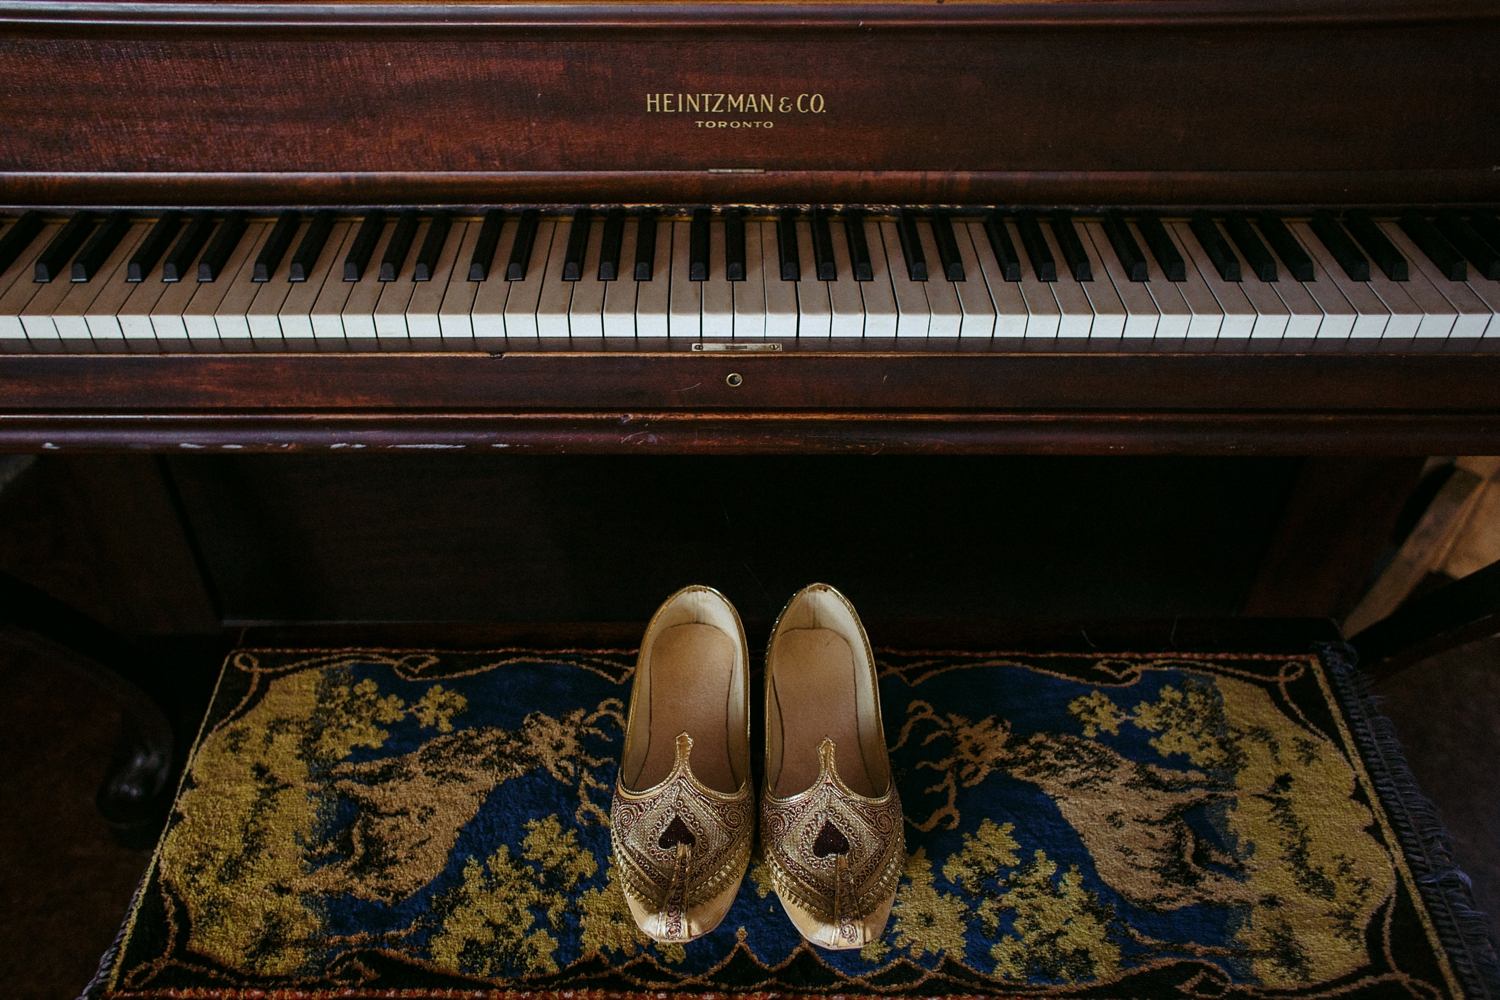 Indian groom shoes on piano bench in Toronto.